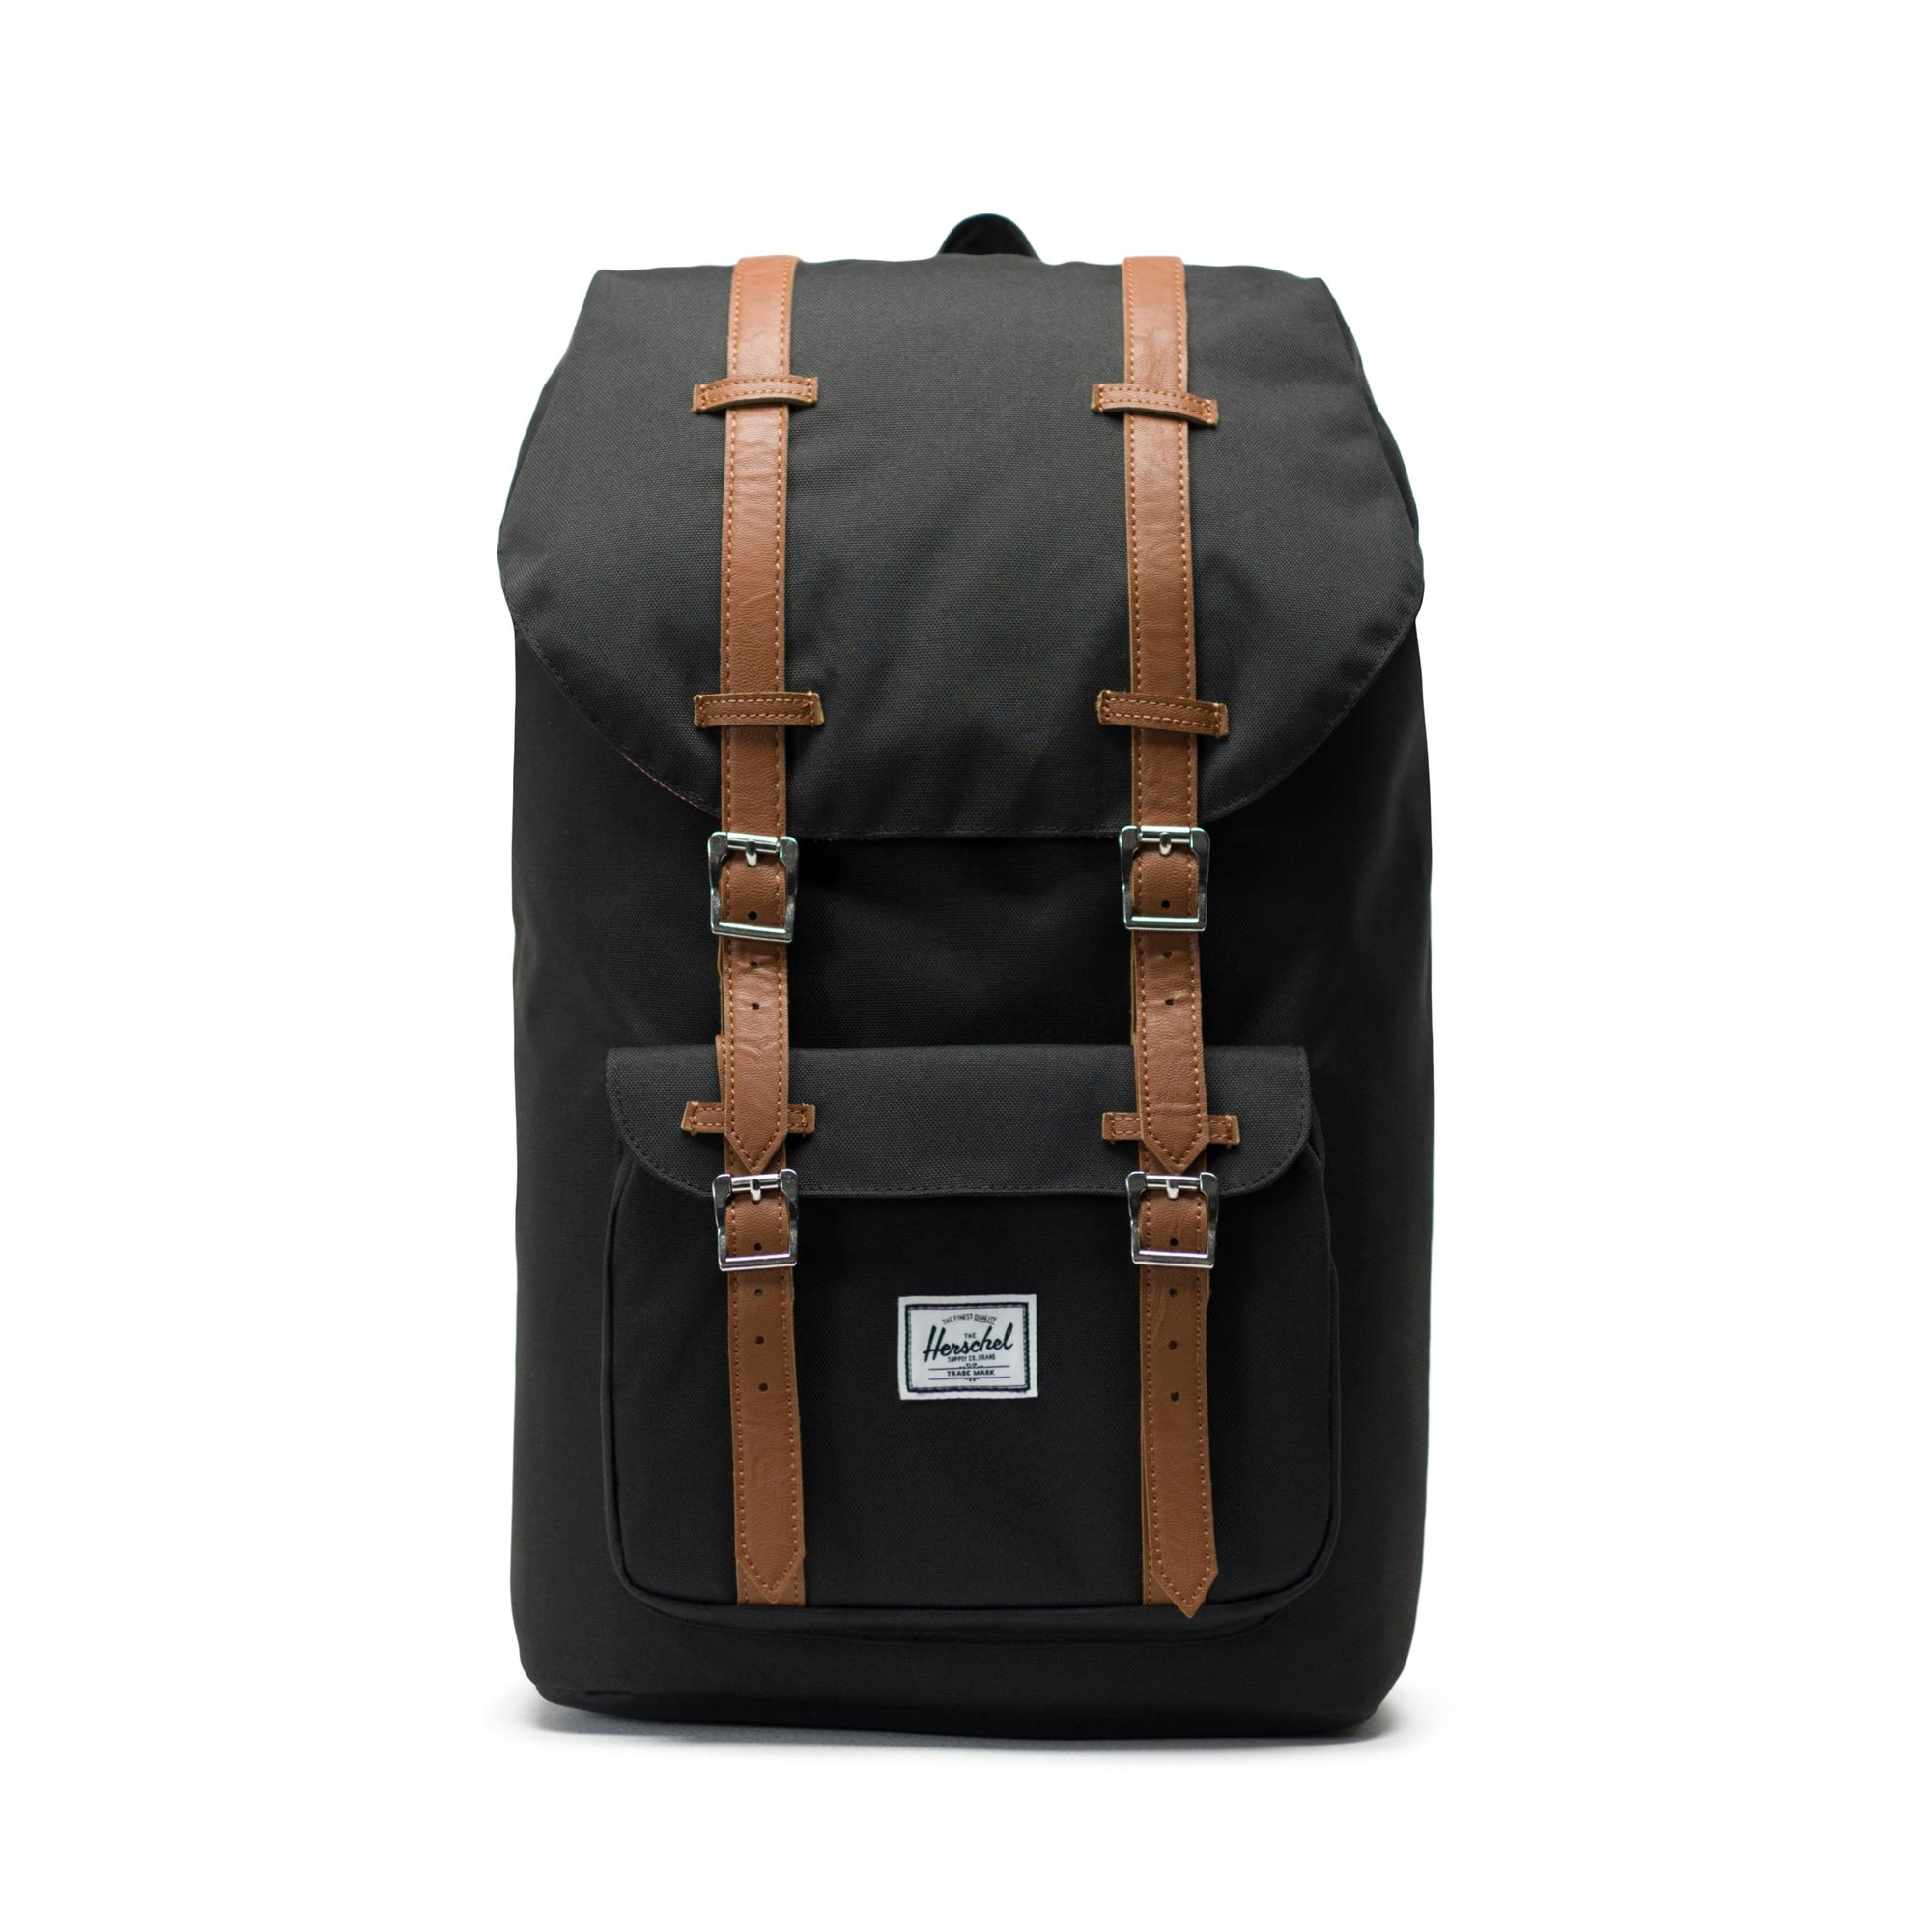 8402ef699e9 Herschel Little America Backpack